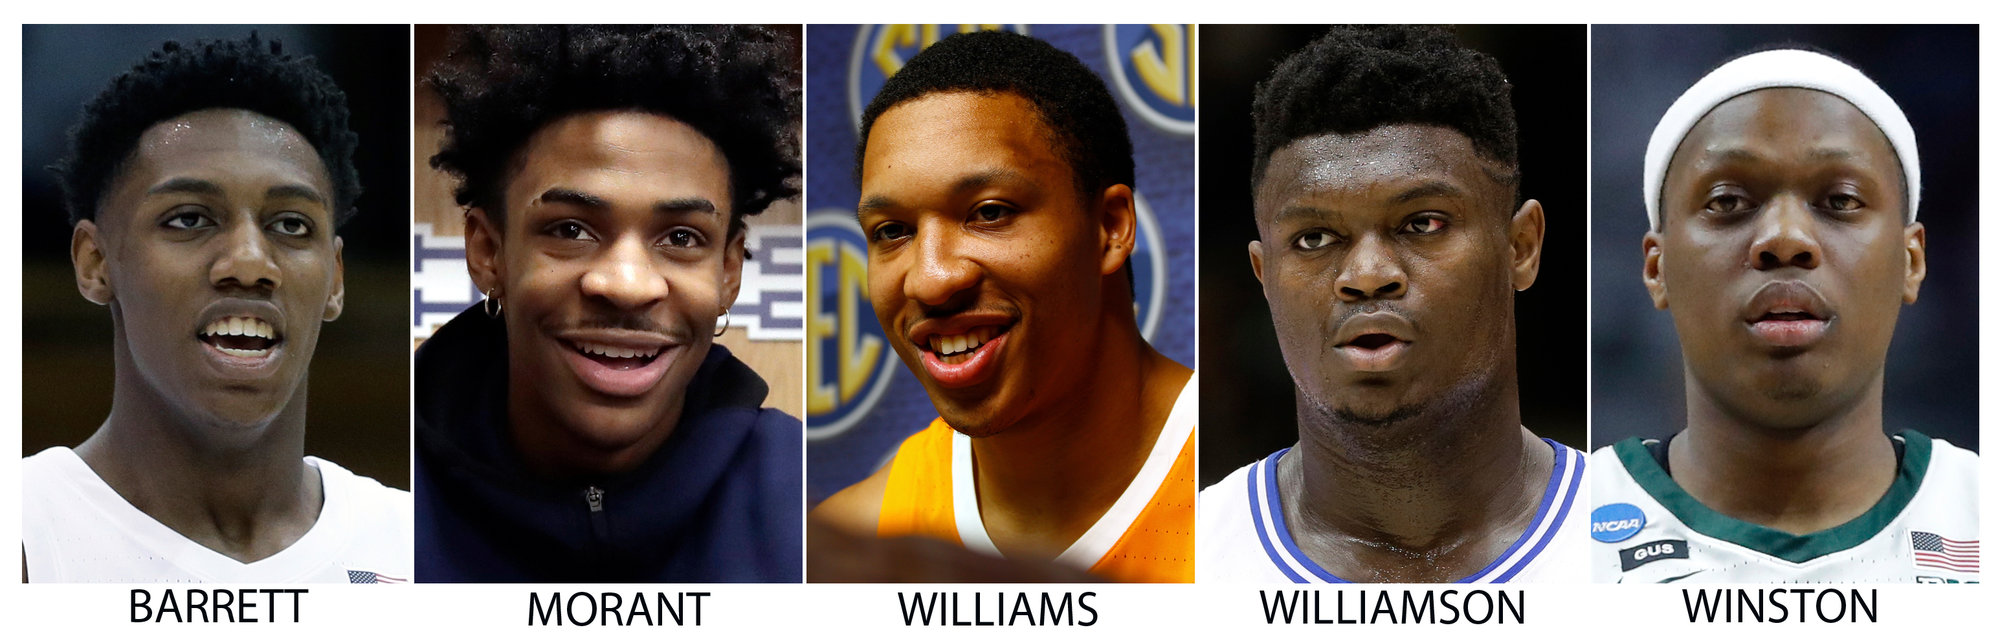 The Associated Press All-America NCAA college basketball first team, announced Tuesday, April 2, 2019. From left are: RJ Barrett, Duke; Ja Morant, Murray State; Grant Williams, Tennessee; Zion Williamson, Duke and Cassius Winston, Michigan State.  (AP Photo/File)